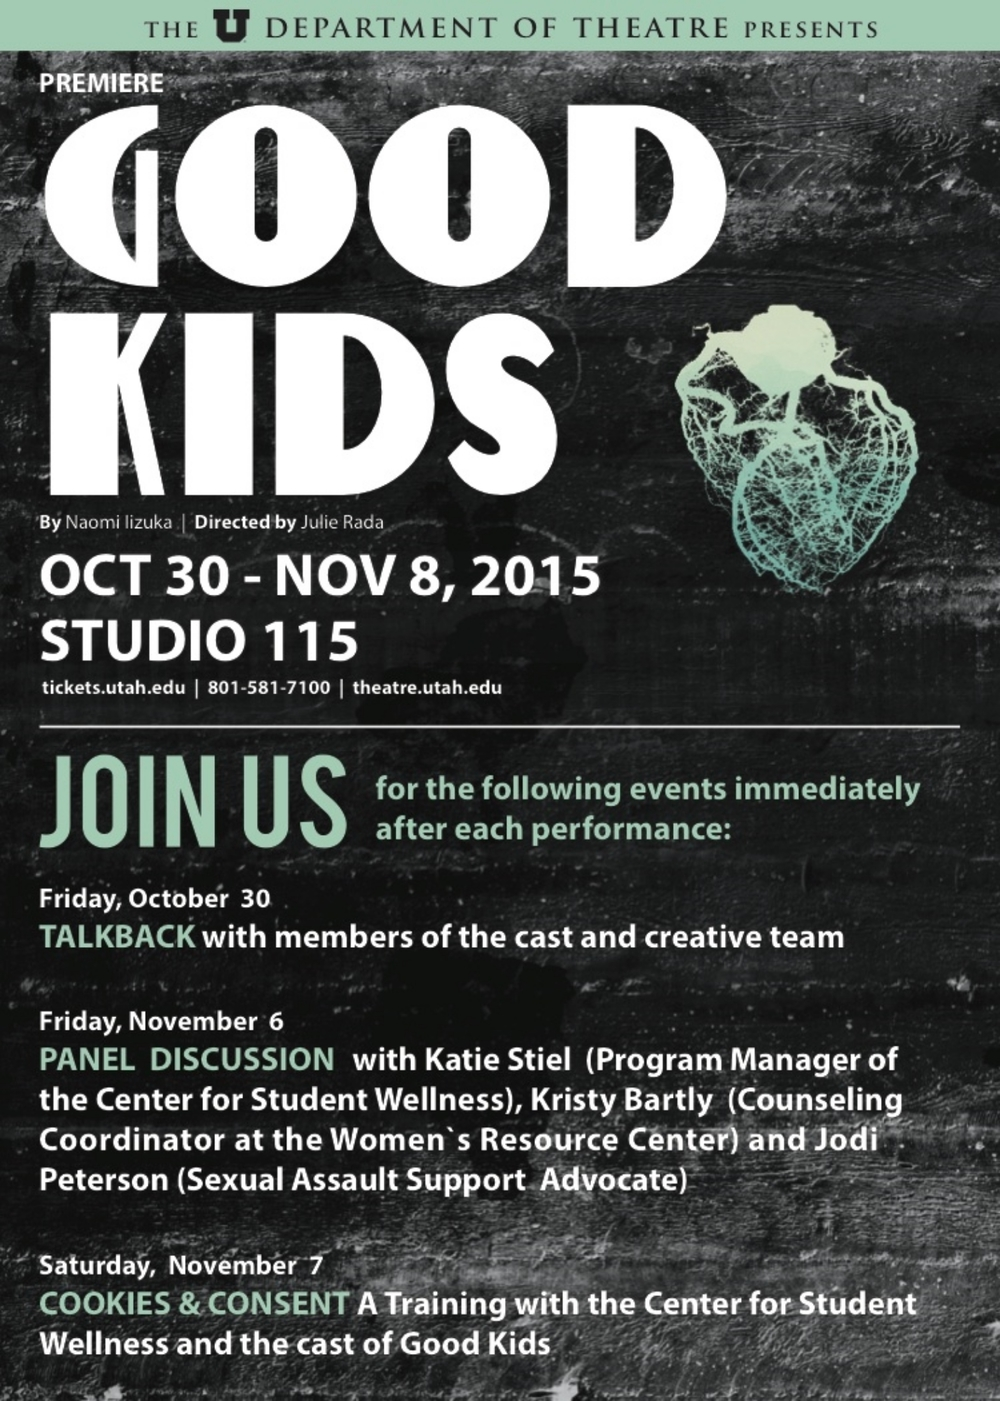 Good Kids talkback flyer.jpg